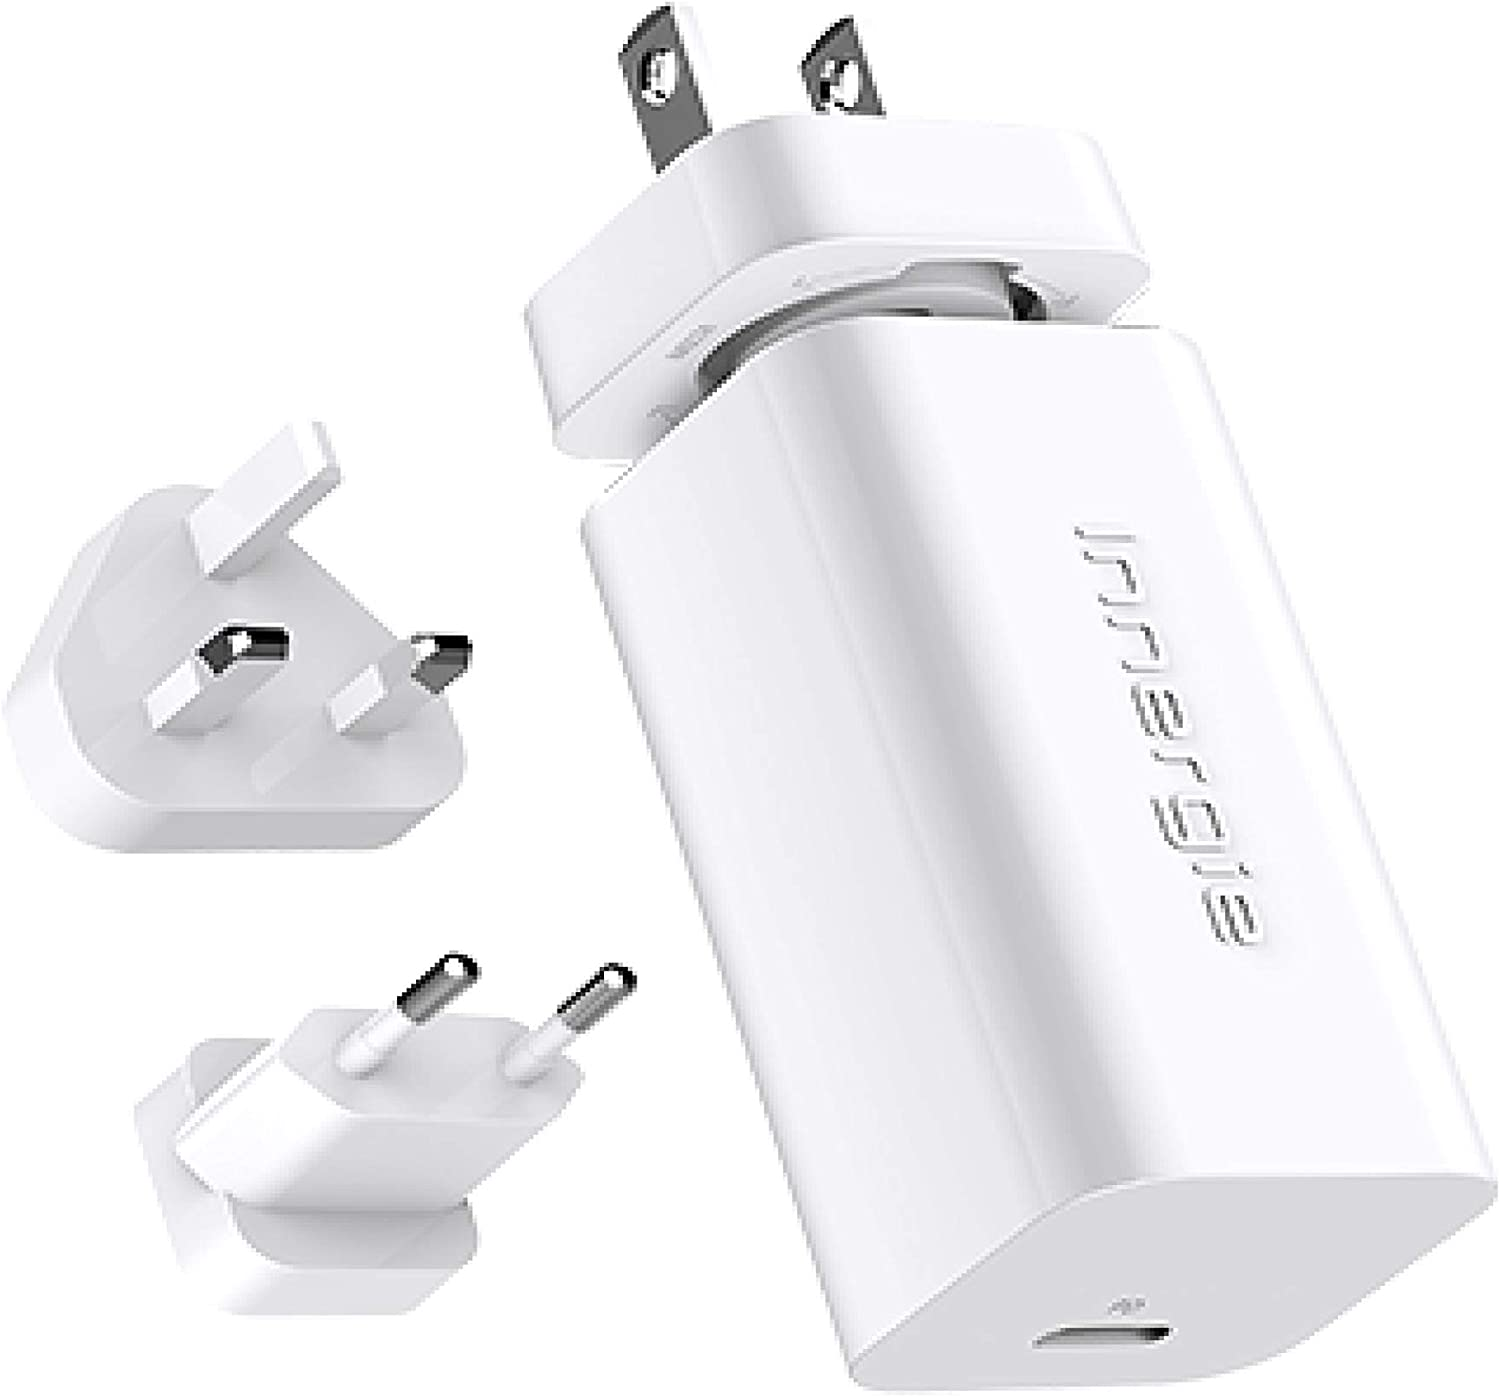 60W USB C/Type C Rapid Wall Charger, Smallest 60W USBC Powerport Laptop/Phone Power Travel Adapter, for iPhone 11/ MacBook Pro/iPad, USB PD Power Delivery, Charge Fast, Foldable Plugs [60C Int'l]